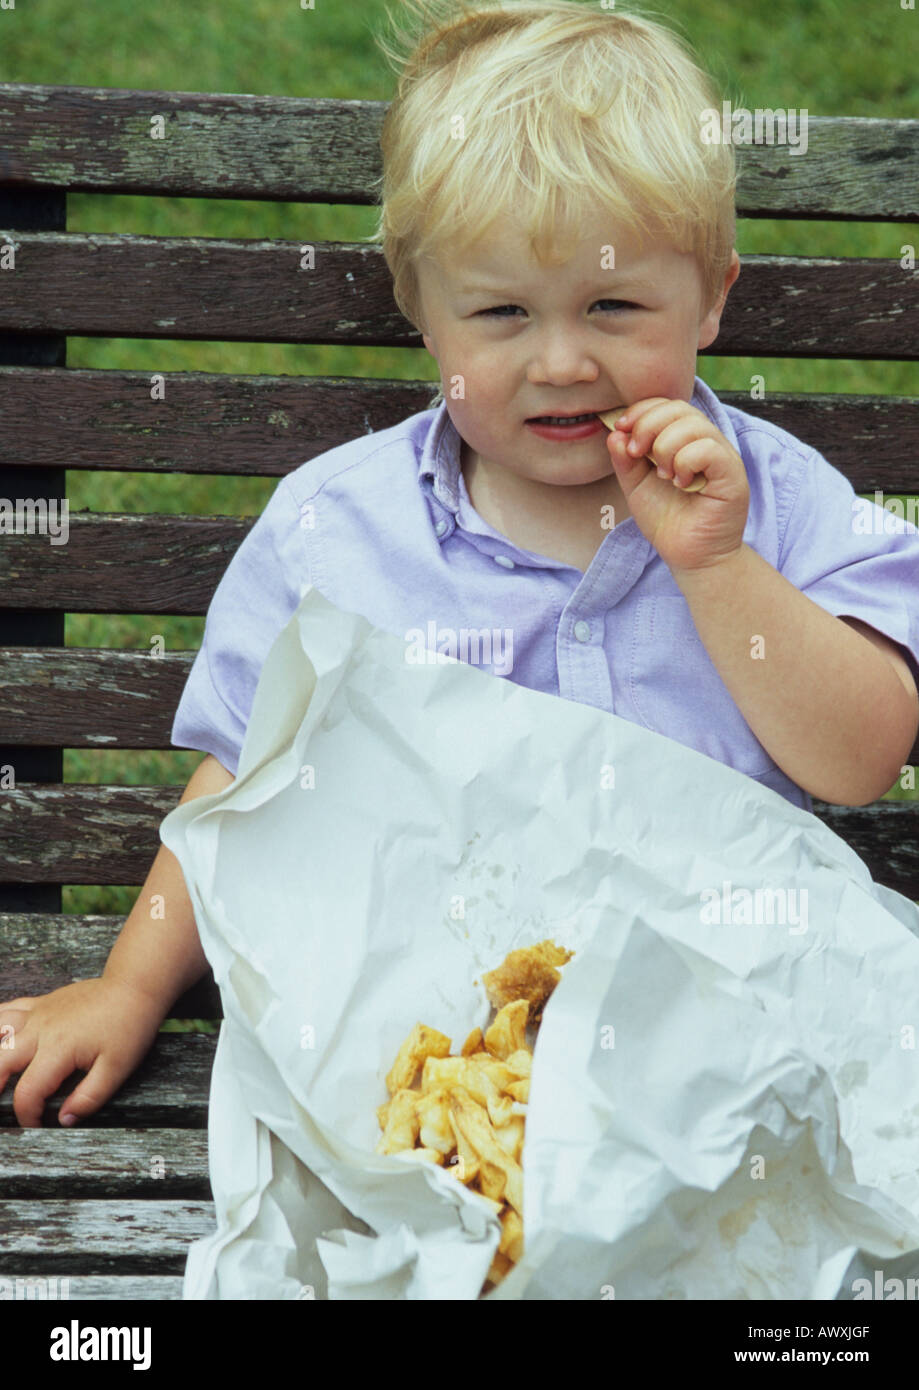 Young Boy Eating Chips At Southwold in Suffolk Uk - Stock Image